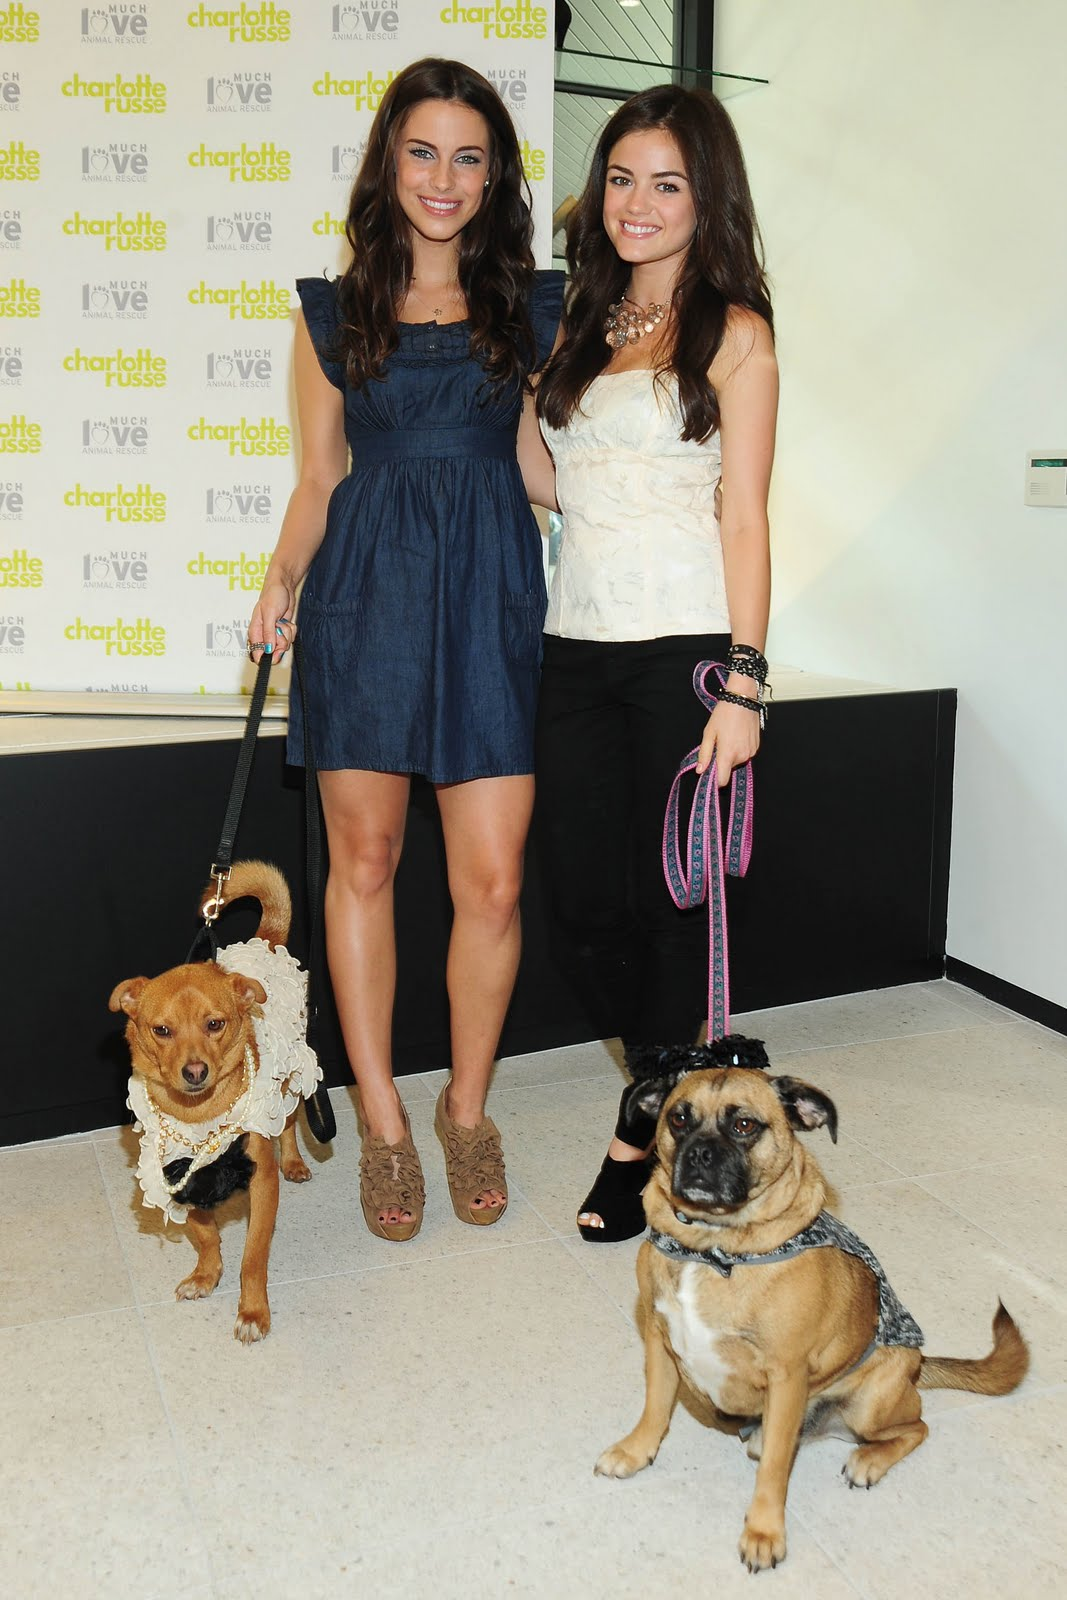 Gossip Freak: Lucy Hale and Jessica Lowndes at Charlotte Russe Store ...